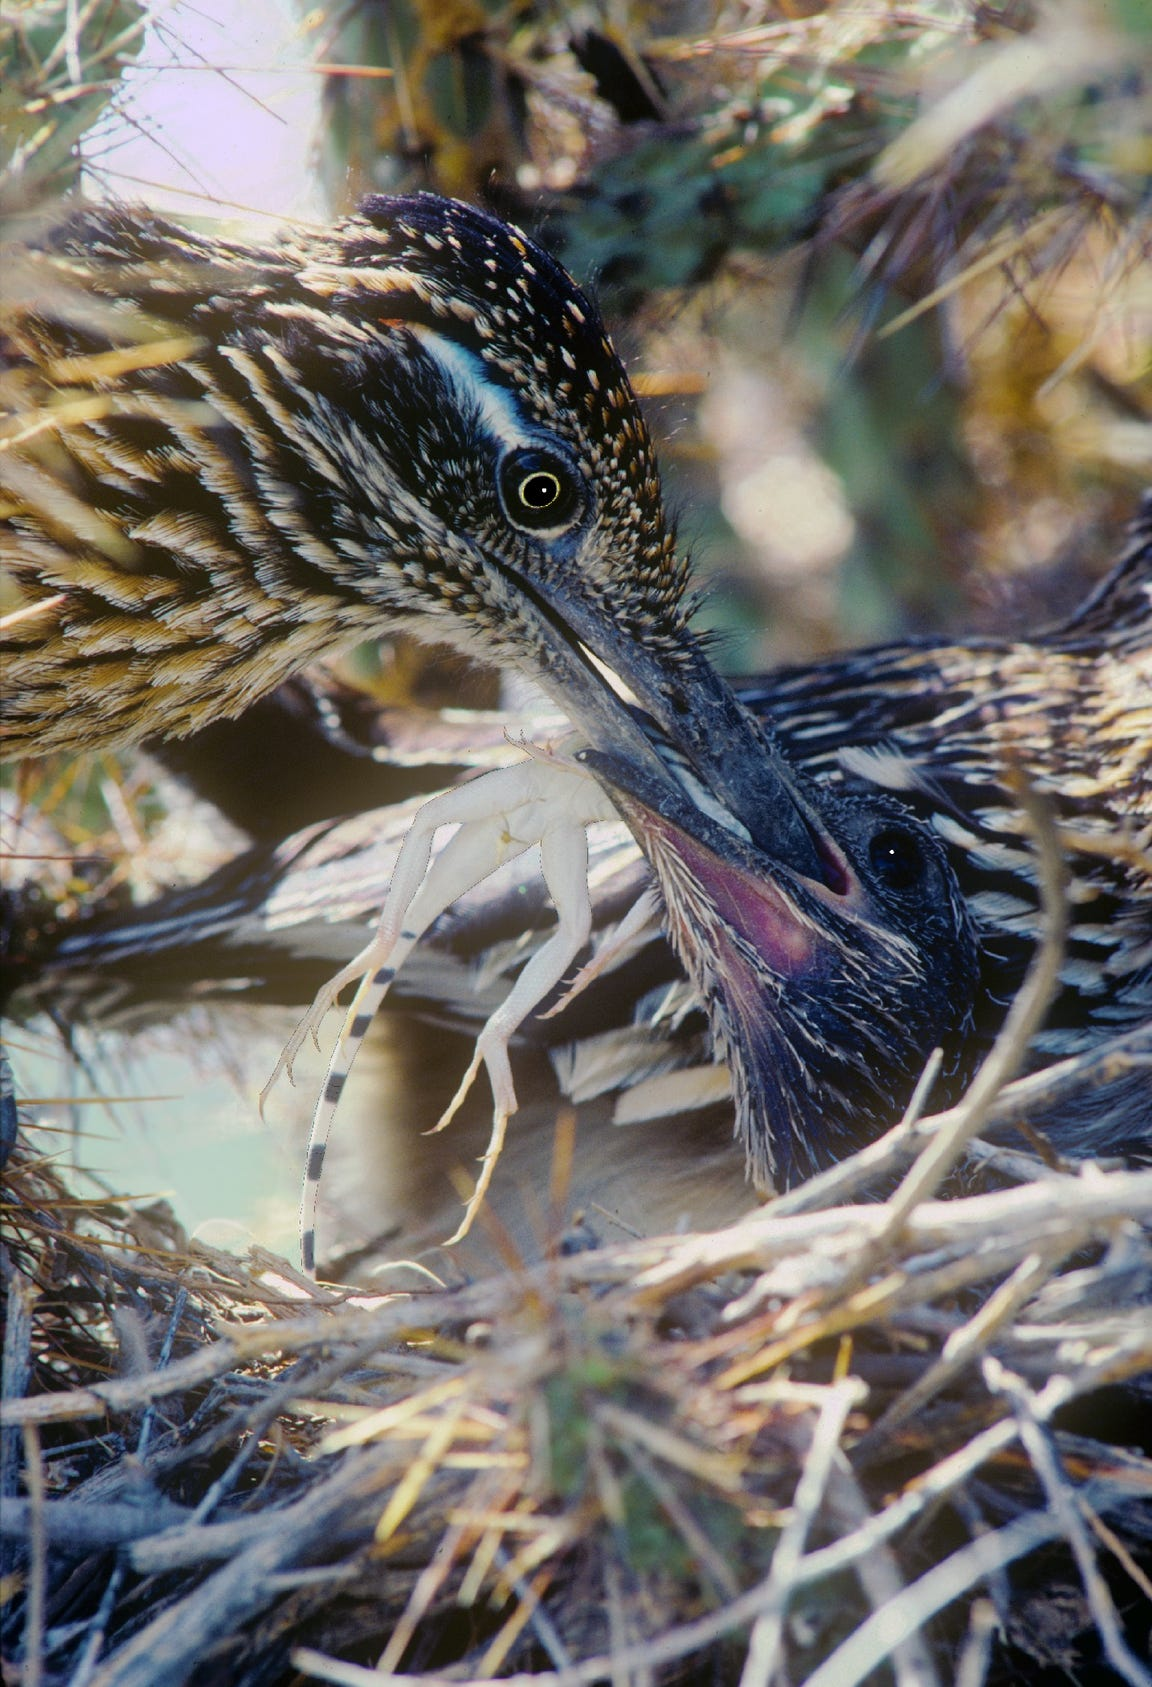 A parent roadrunner feeding a lizard to a chick